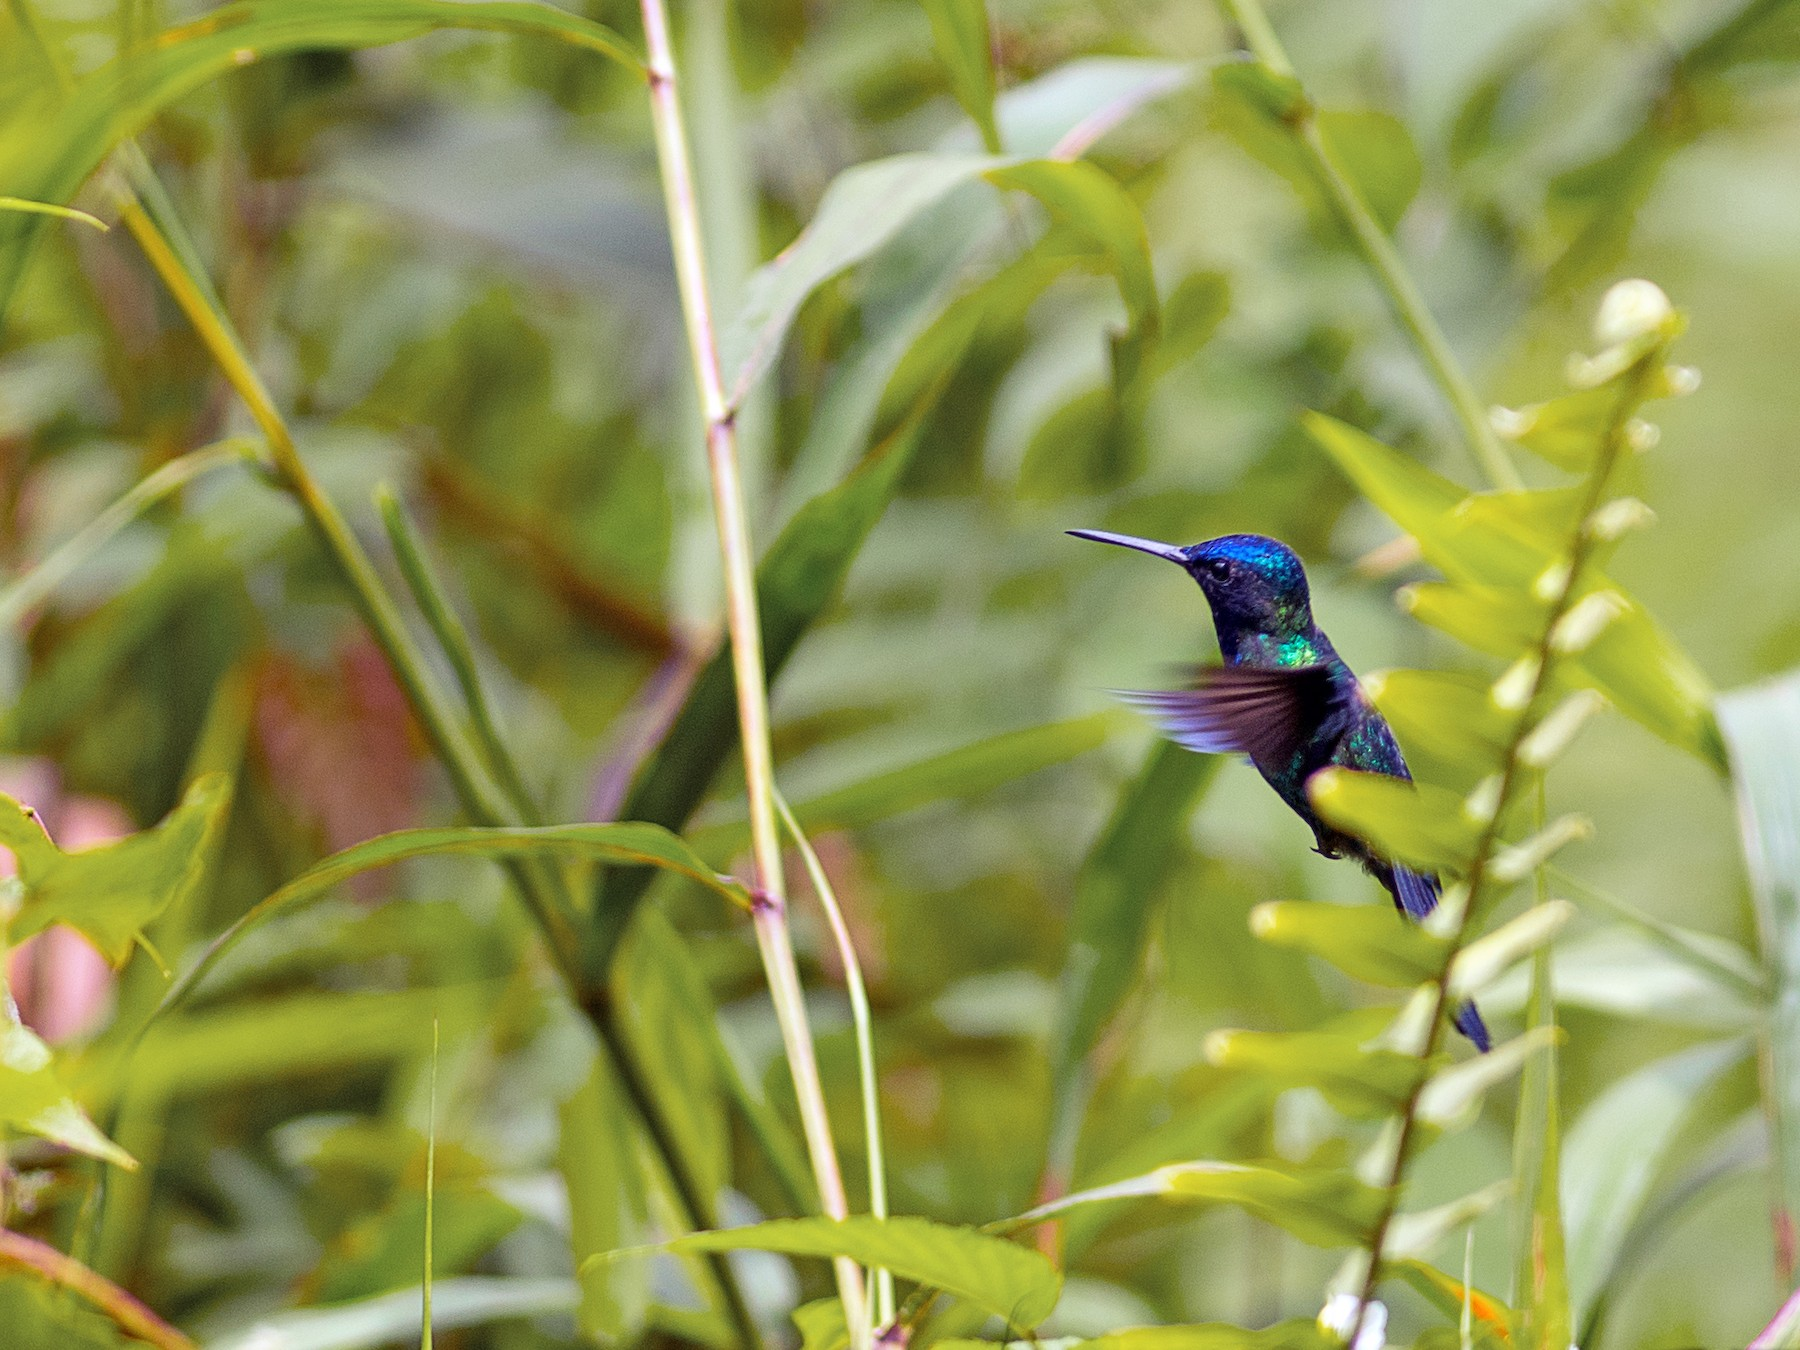 Blue-headed Hummingbird - Frantz Delcroix (Duzont)